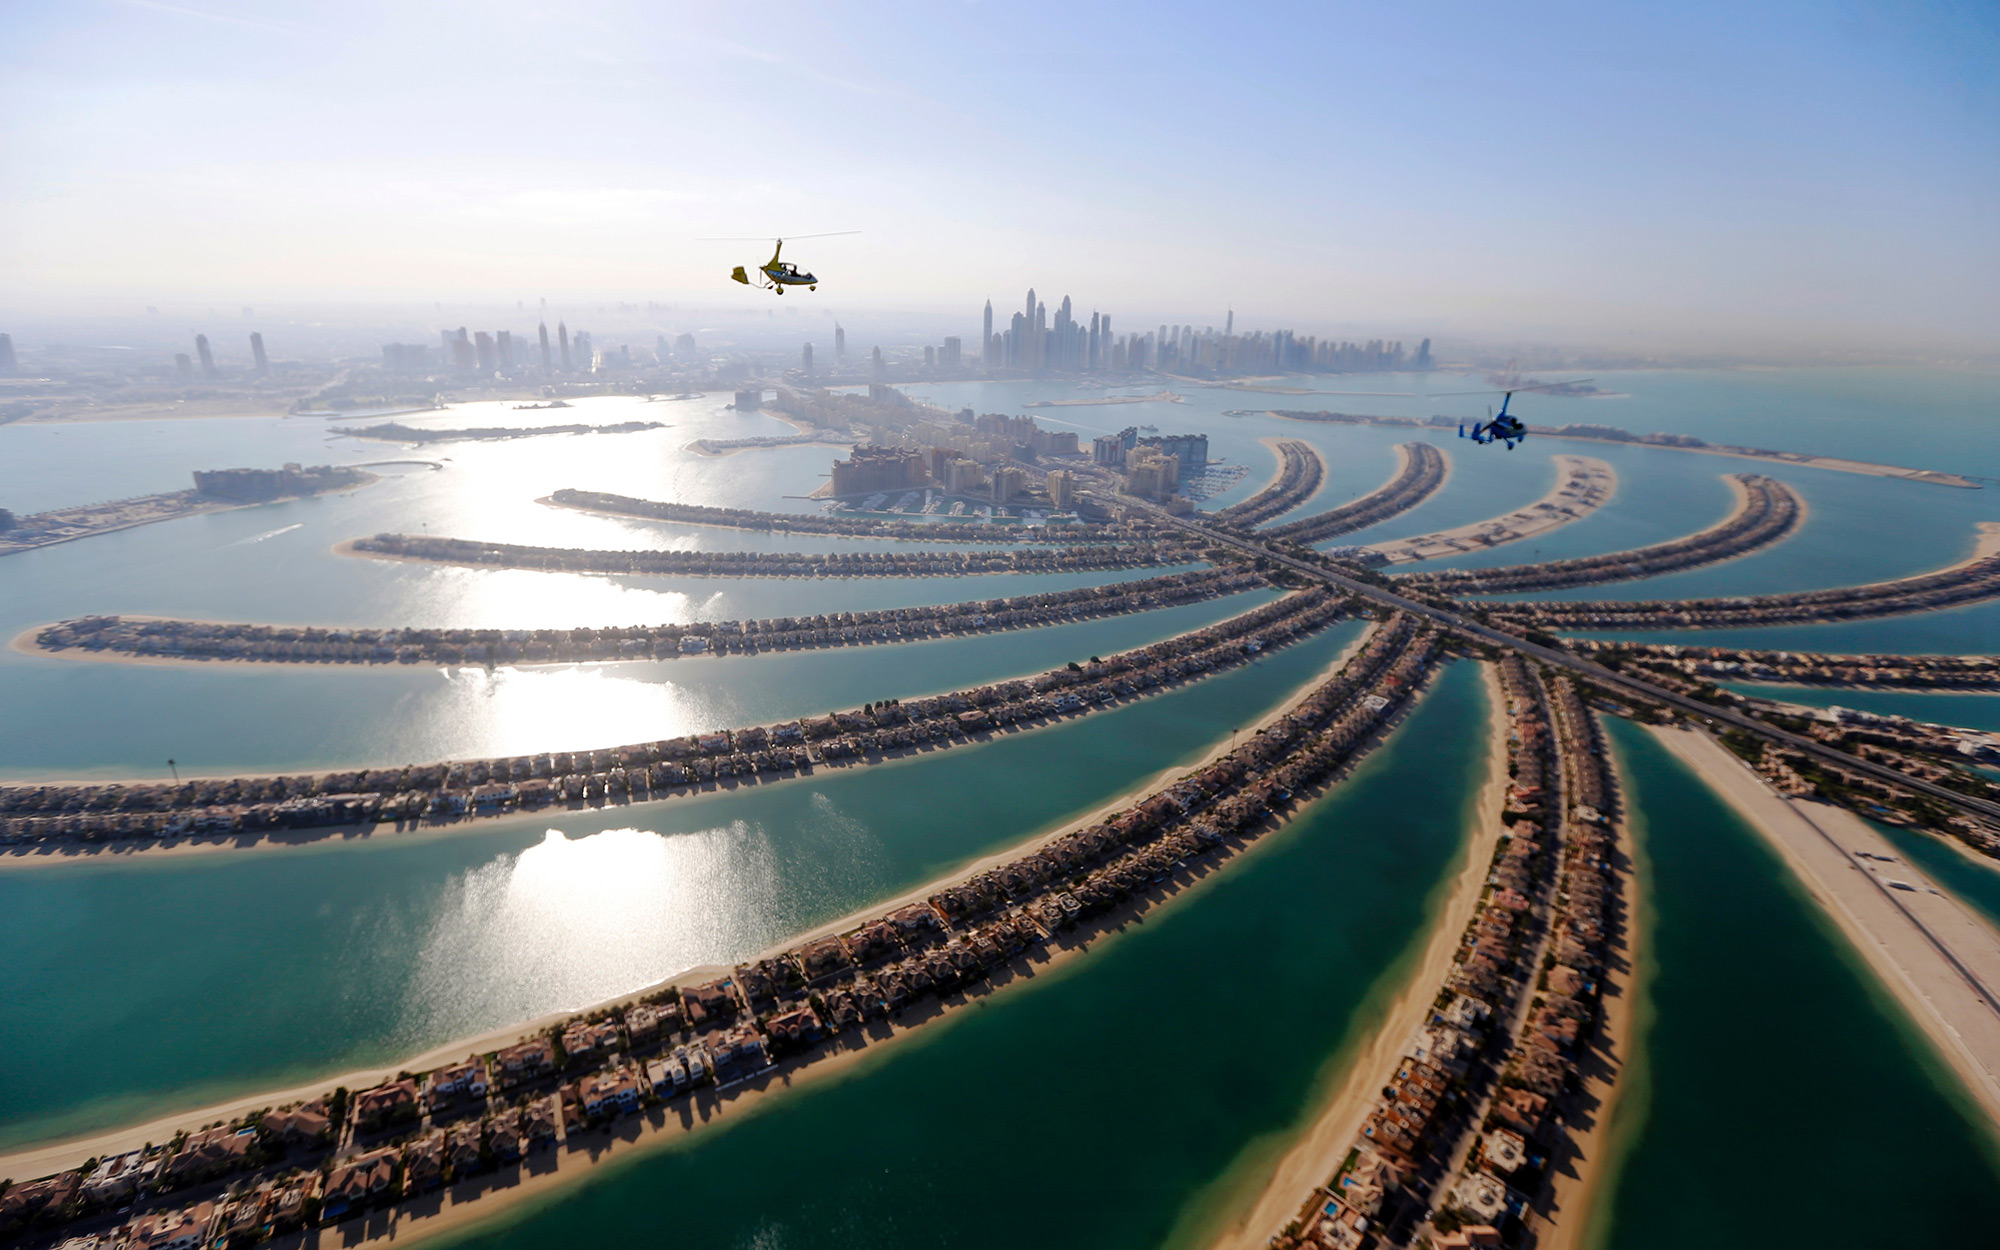 TOPSHOT - Gyrocopters fly over the capital of the United Arab Emirates, Dubai, during the World Air Games 2015, on December 9, 2015. AFP PHOTO / KARIM SAHIB / AFP / KARIM SAHIB        (Photo credit should read KARIM SAHIB/AFP/Getty Images)